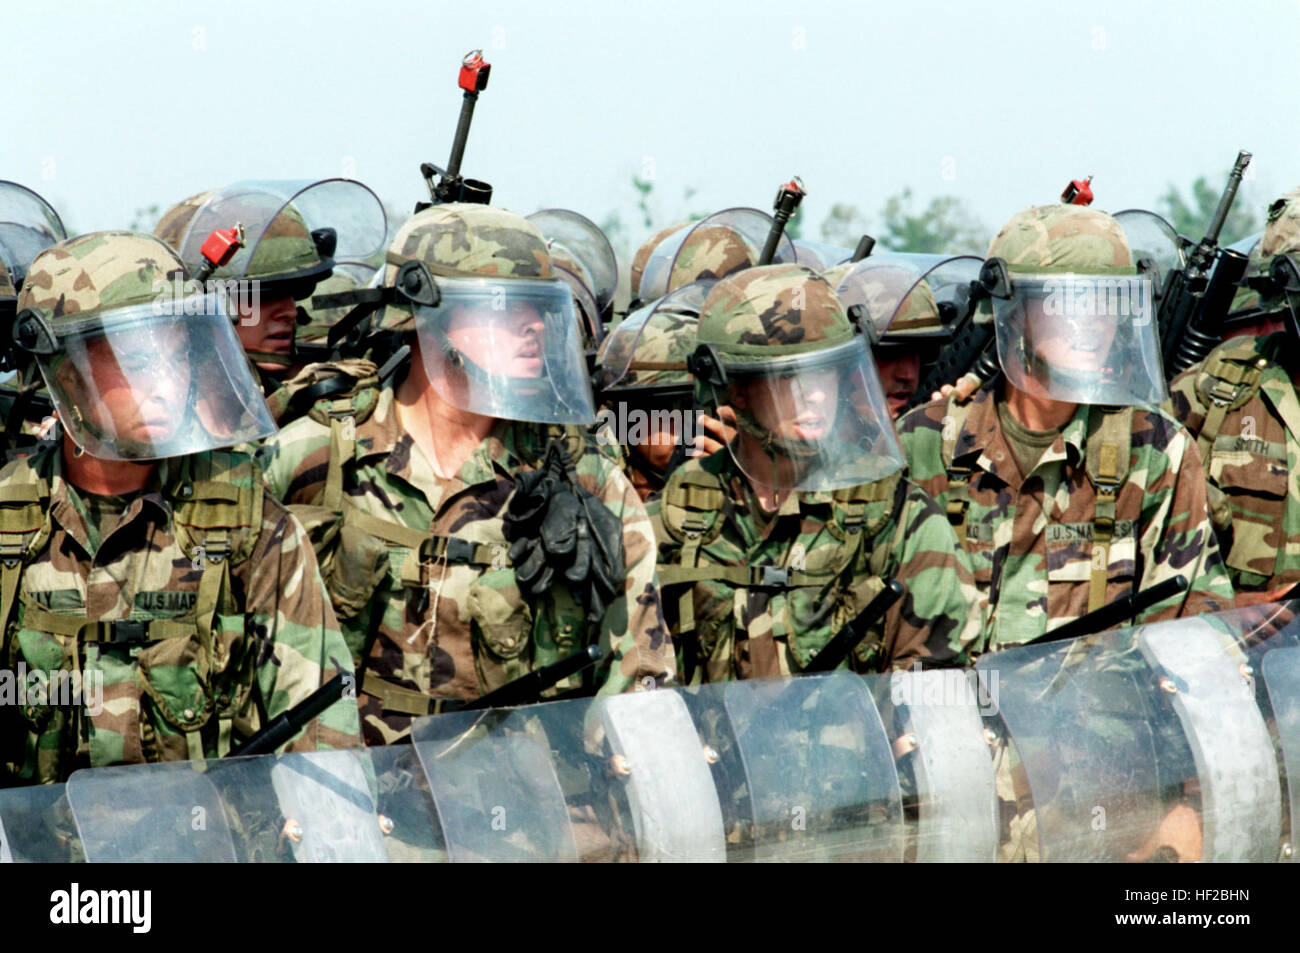 980604-M-2374T-015 U.S. Marines in riot gear build a human wall as they demonstrate one of the ways for handling - Stock Image